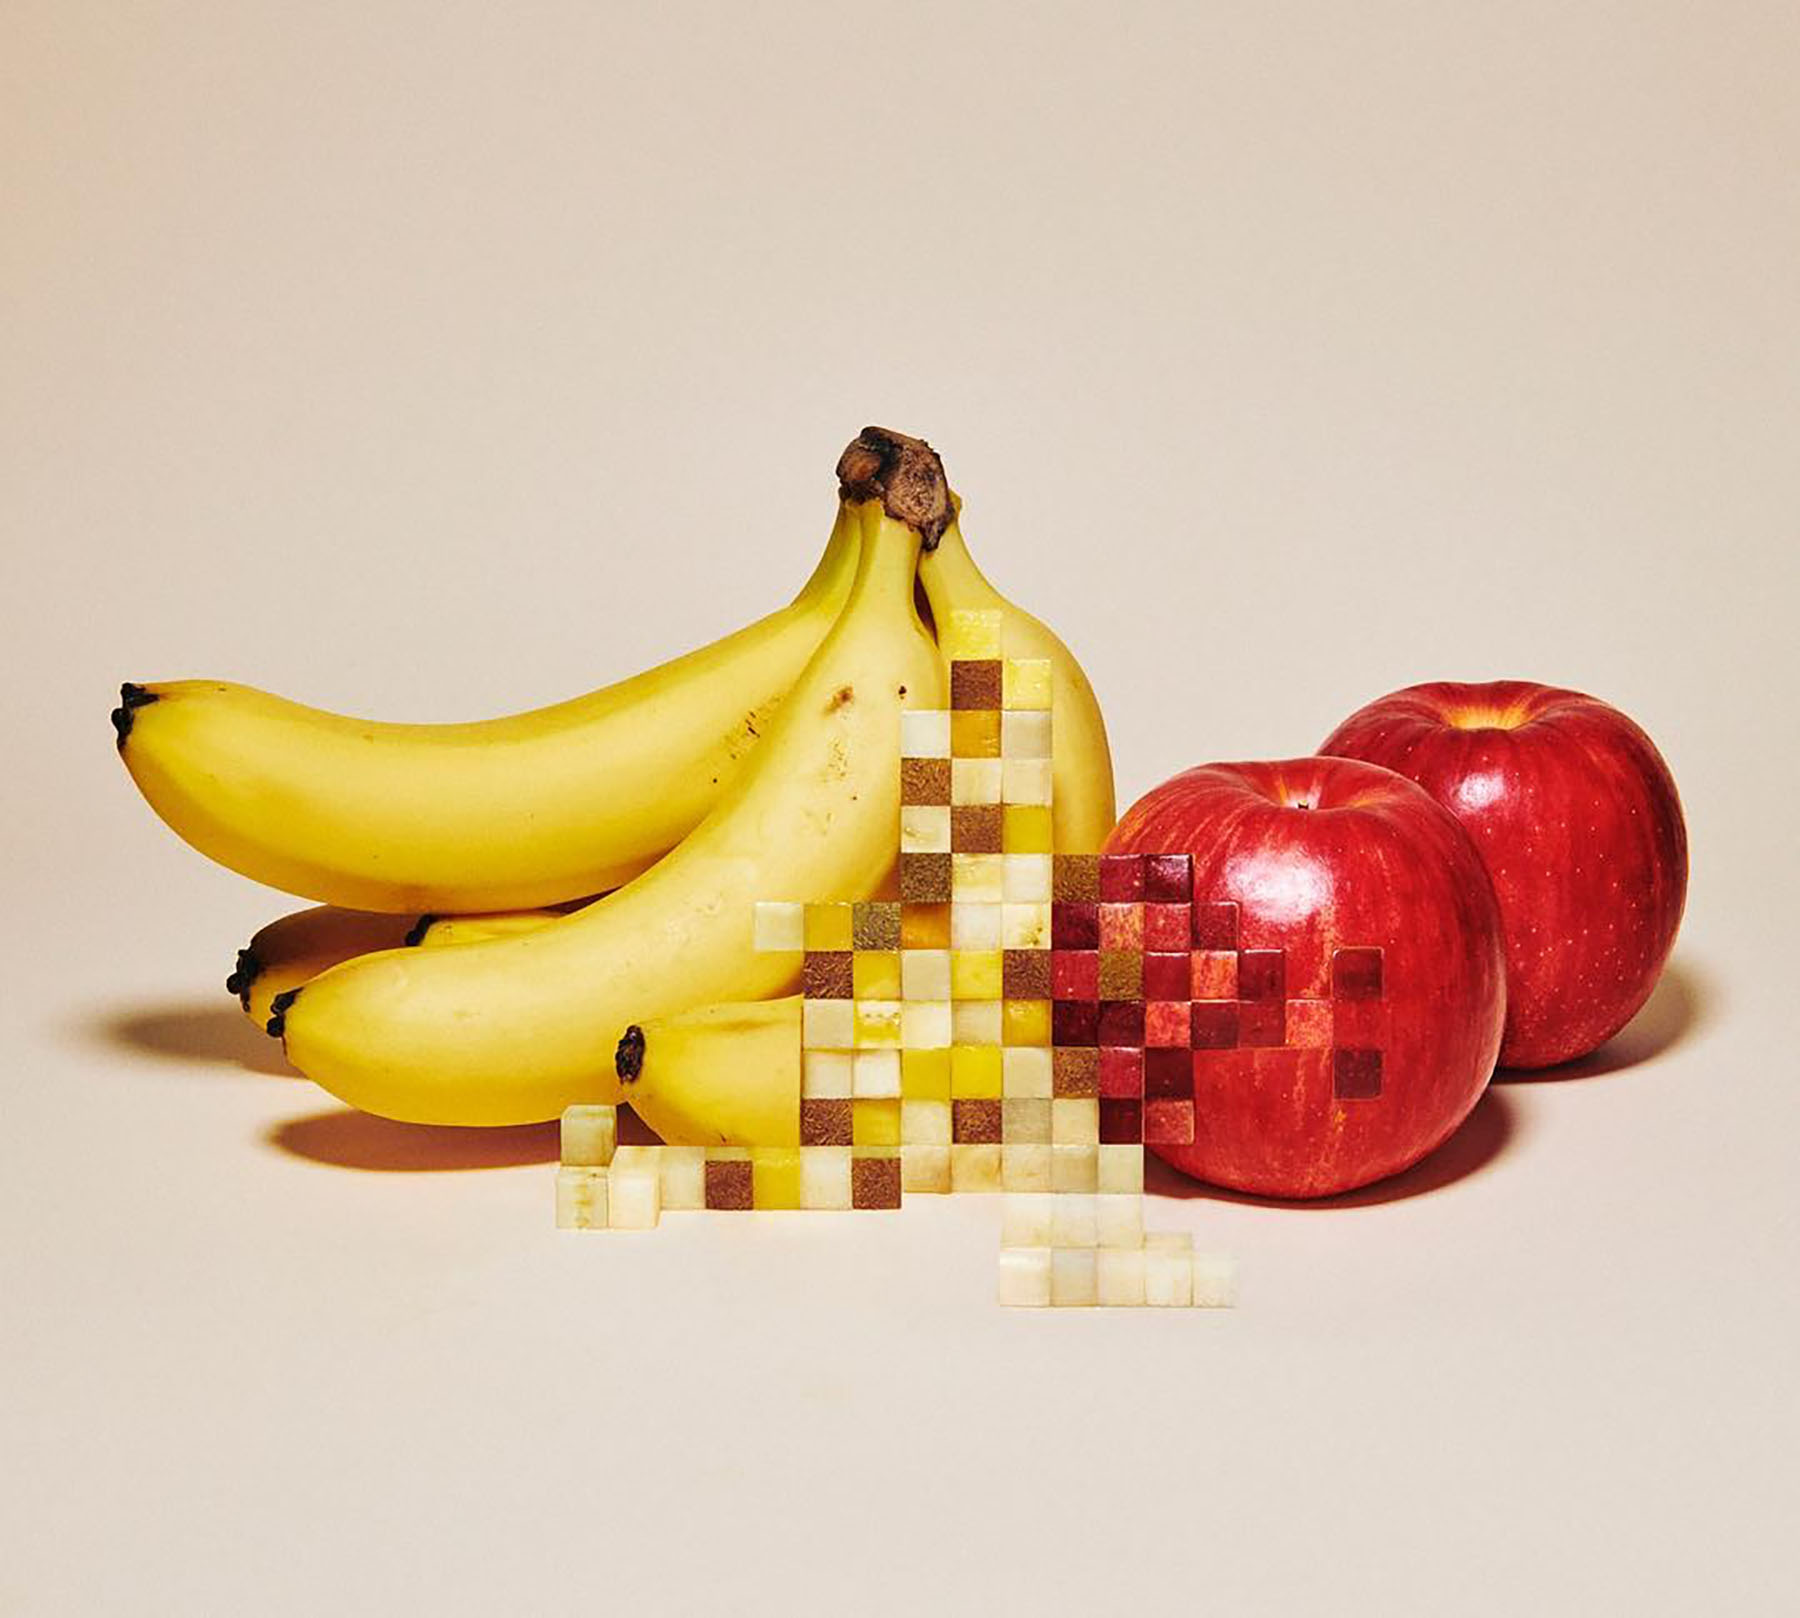 Dezainaa_ yuni-yoshida-pixelated-food-002.jpg